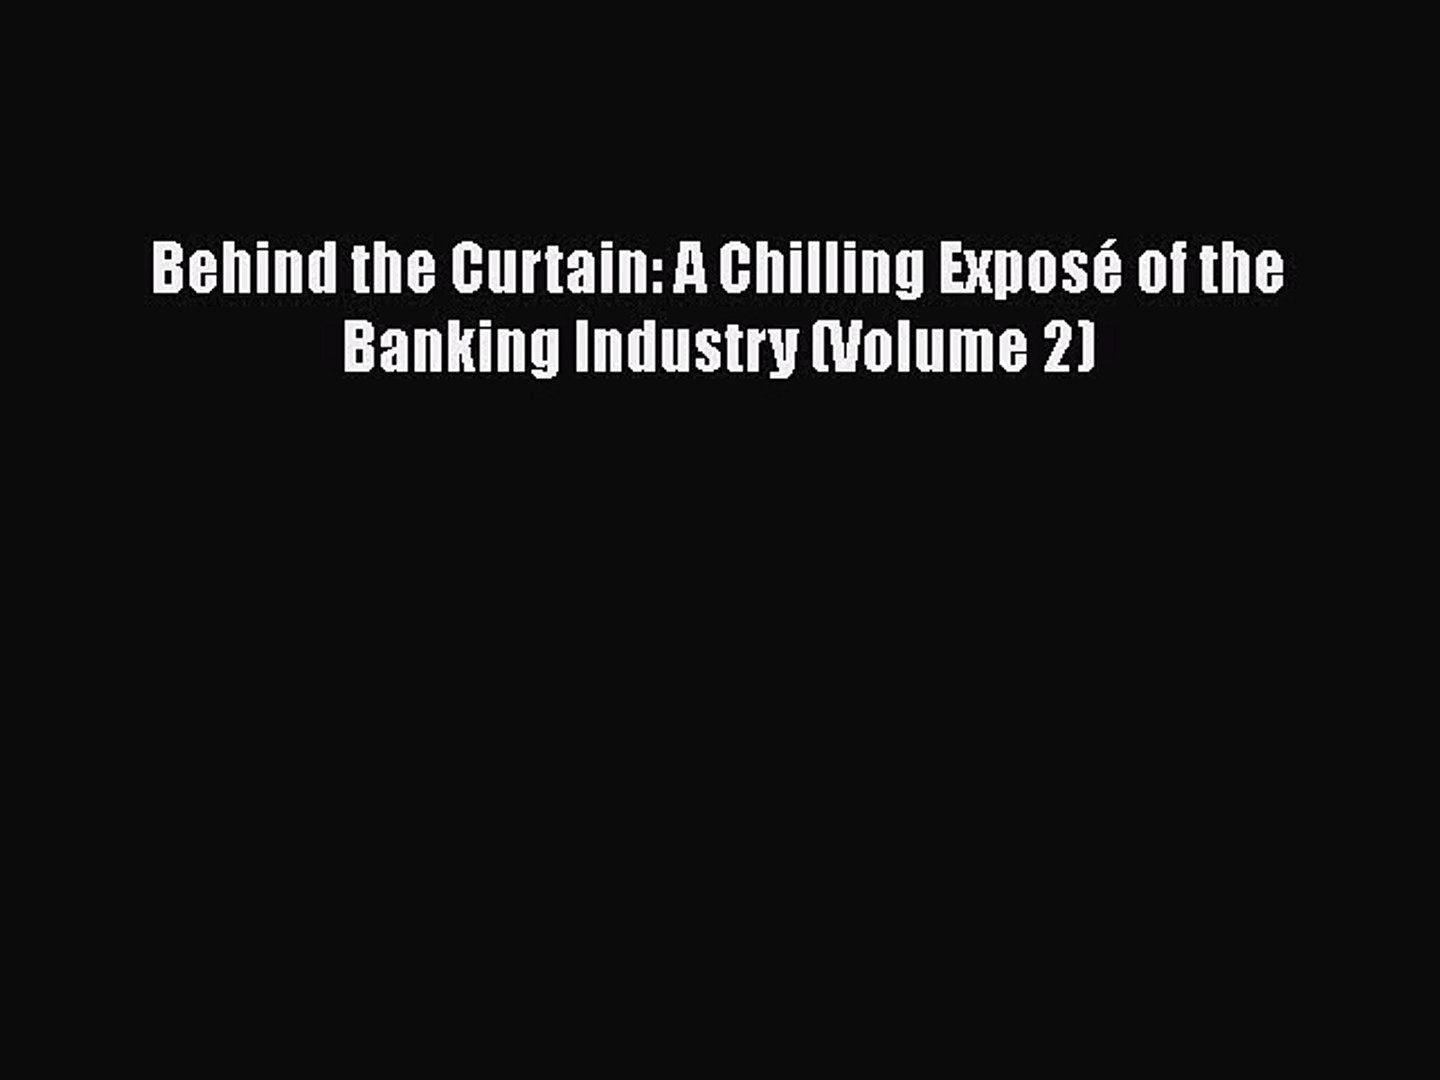 [PDF] Behind the Curtain: A Chilling Exposé of the Banking Industry (Volume 2) [Download] Online